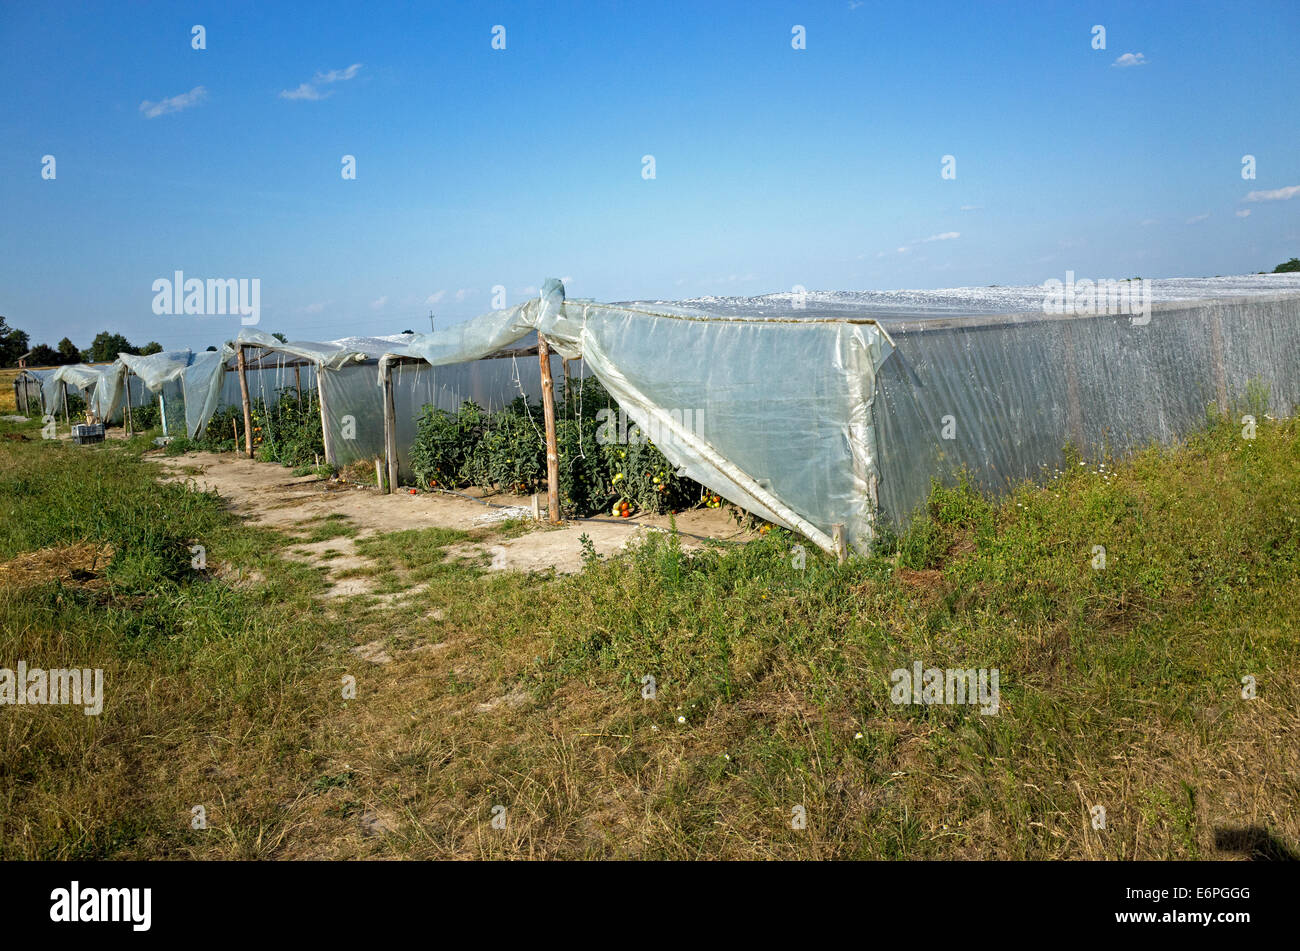 Traditional farm converted to modern agriculture with mass tomato production under long plastic tents. Zawady Poland - Stock Image